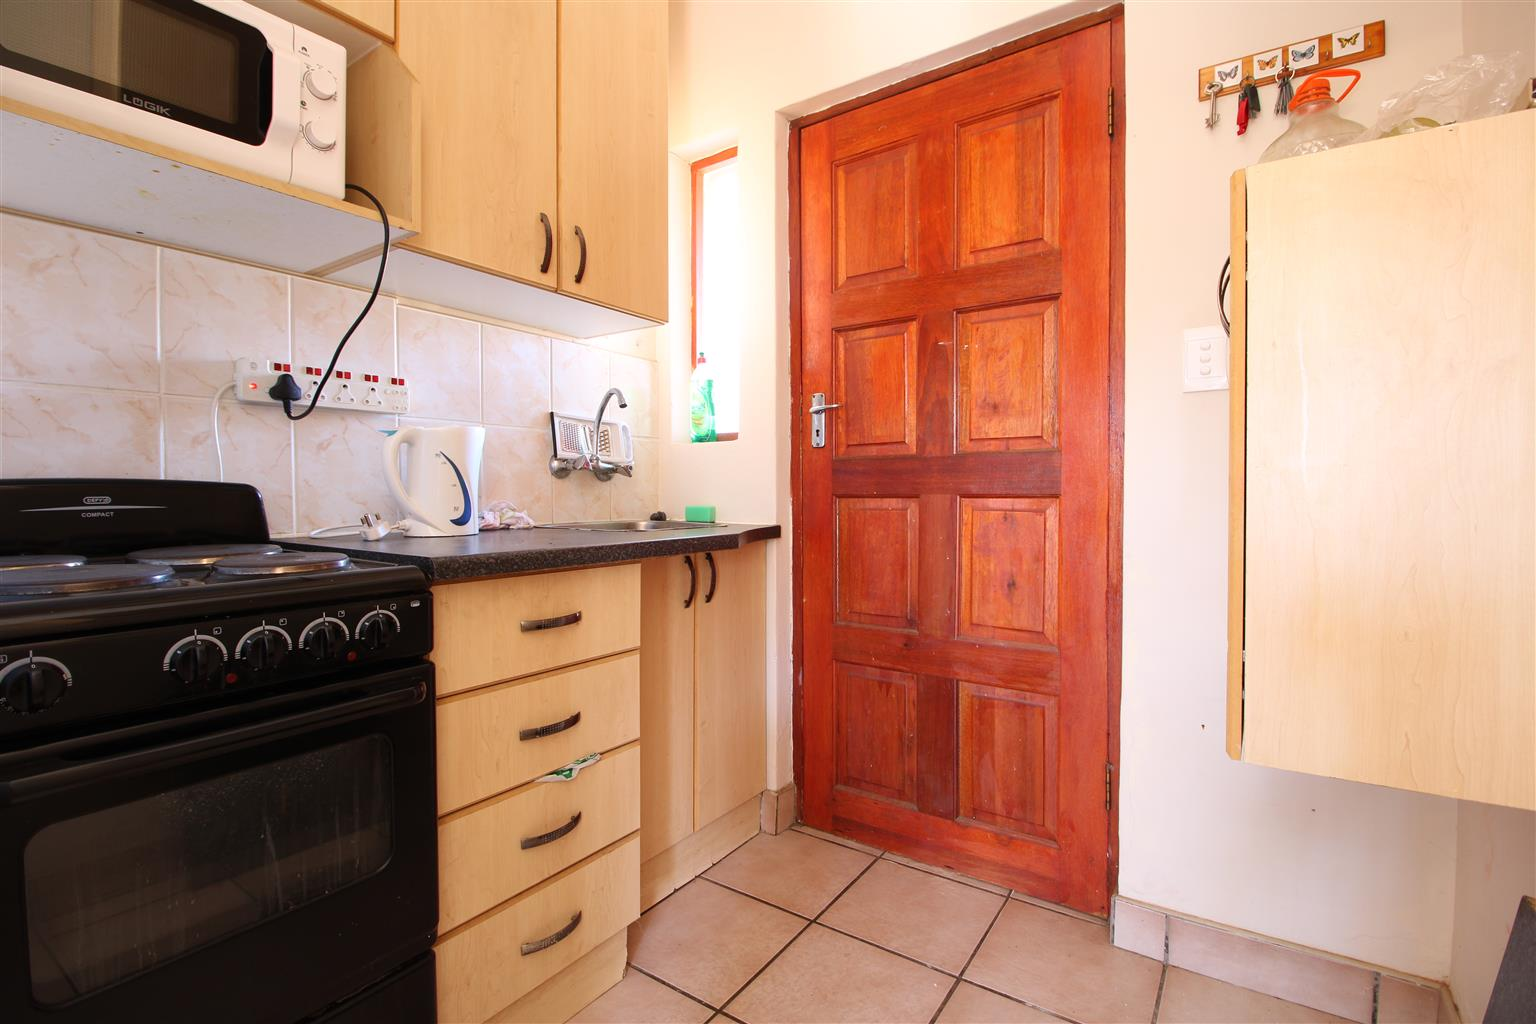 Very neat apartment, walking distance from NWU